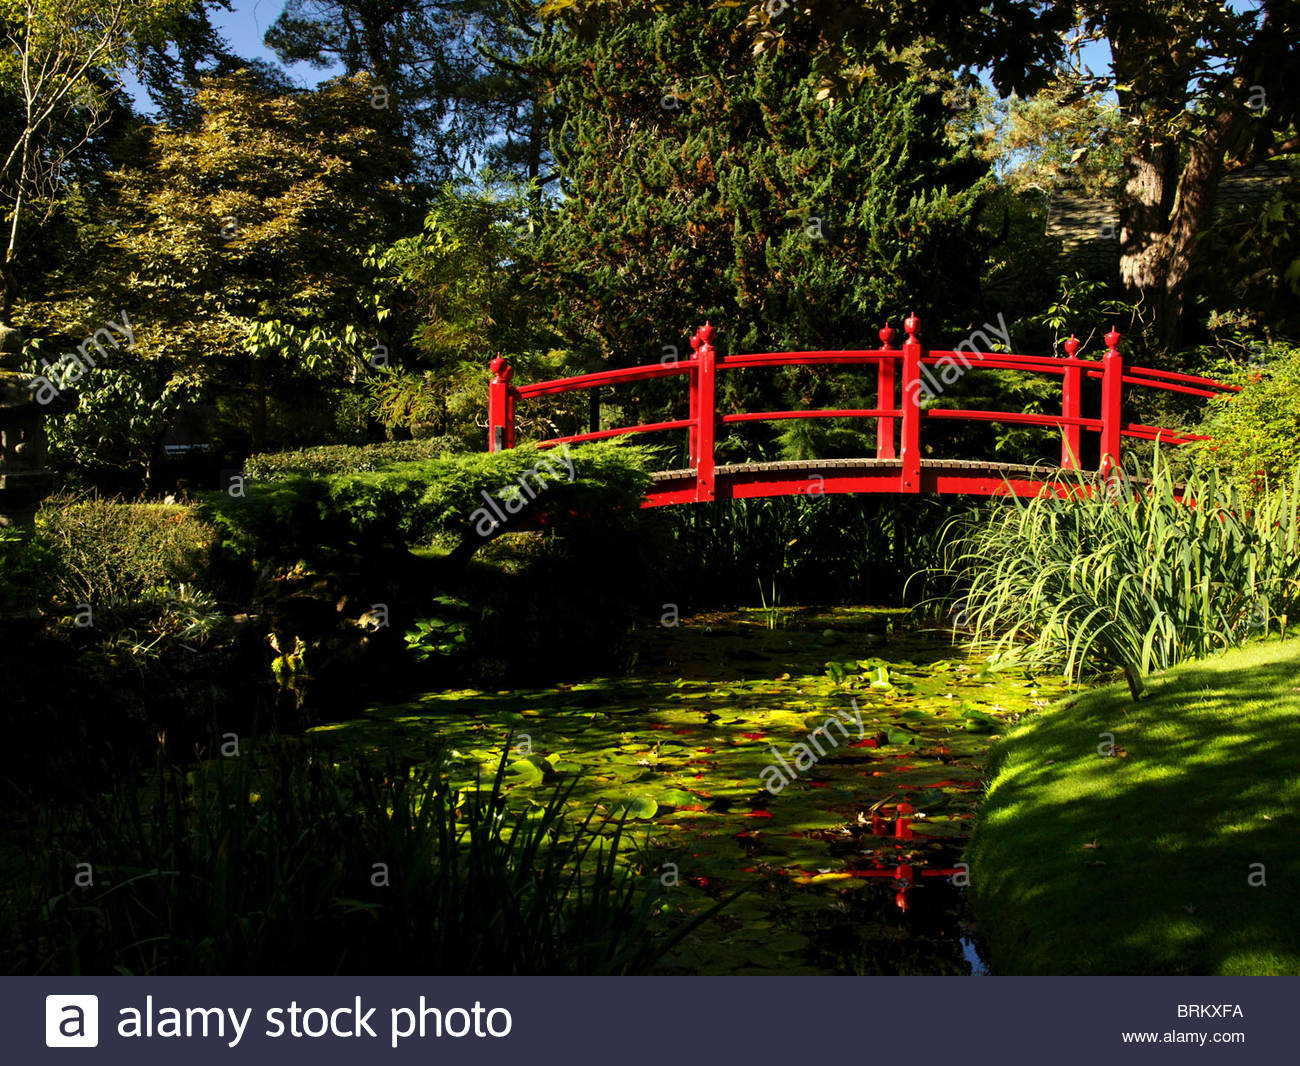 A red foot bridge within a Japanese themed garden in Ireland - Stock Image